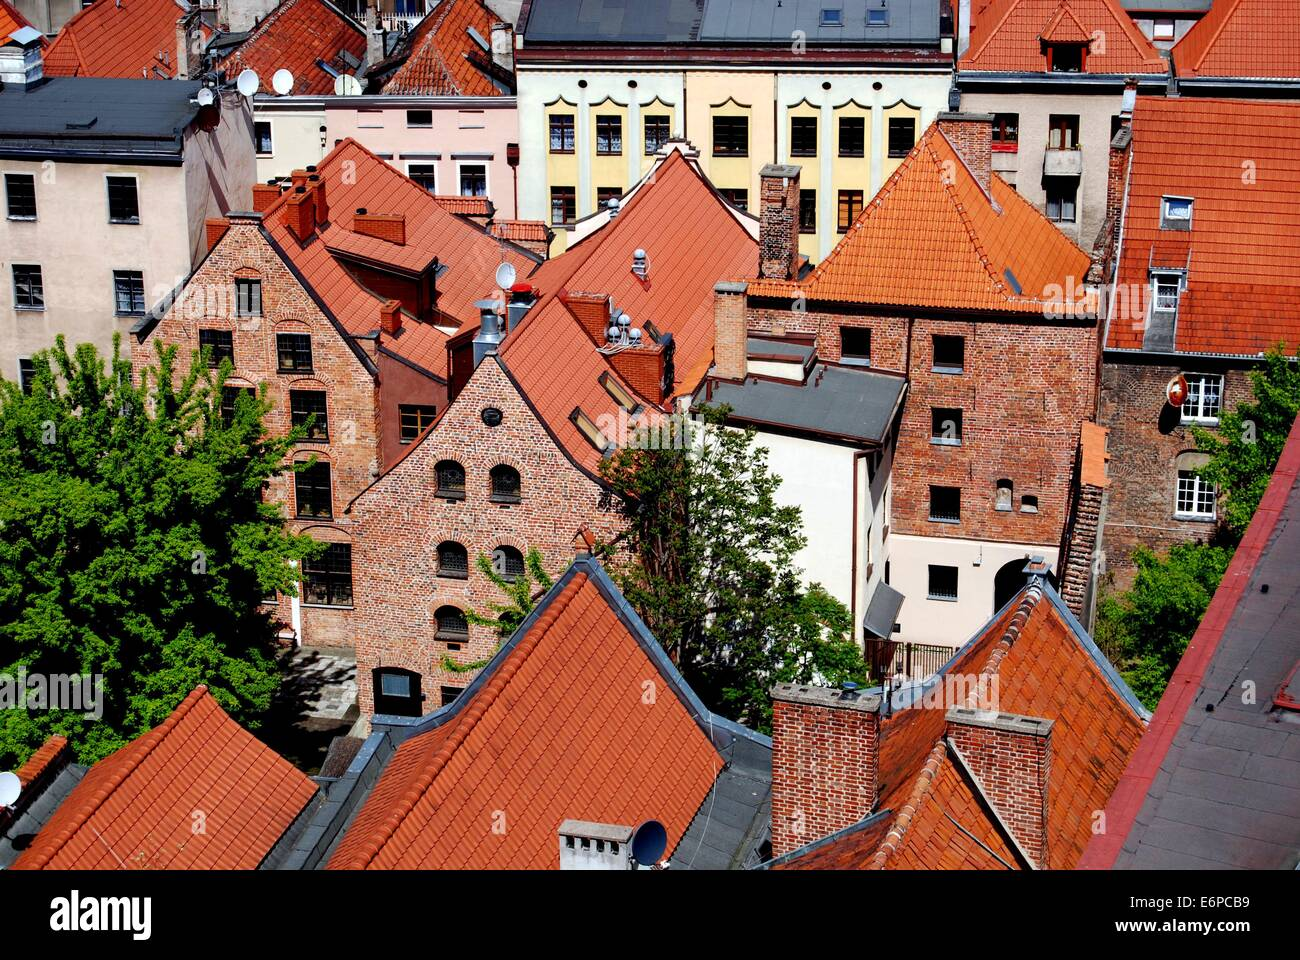 TORUN, POLAND:  View of the handsome 17th and 18th century houses seen from the Town Hall (Rathaus Staromiejski) - Stock Image